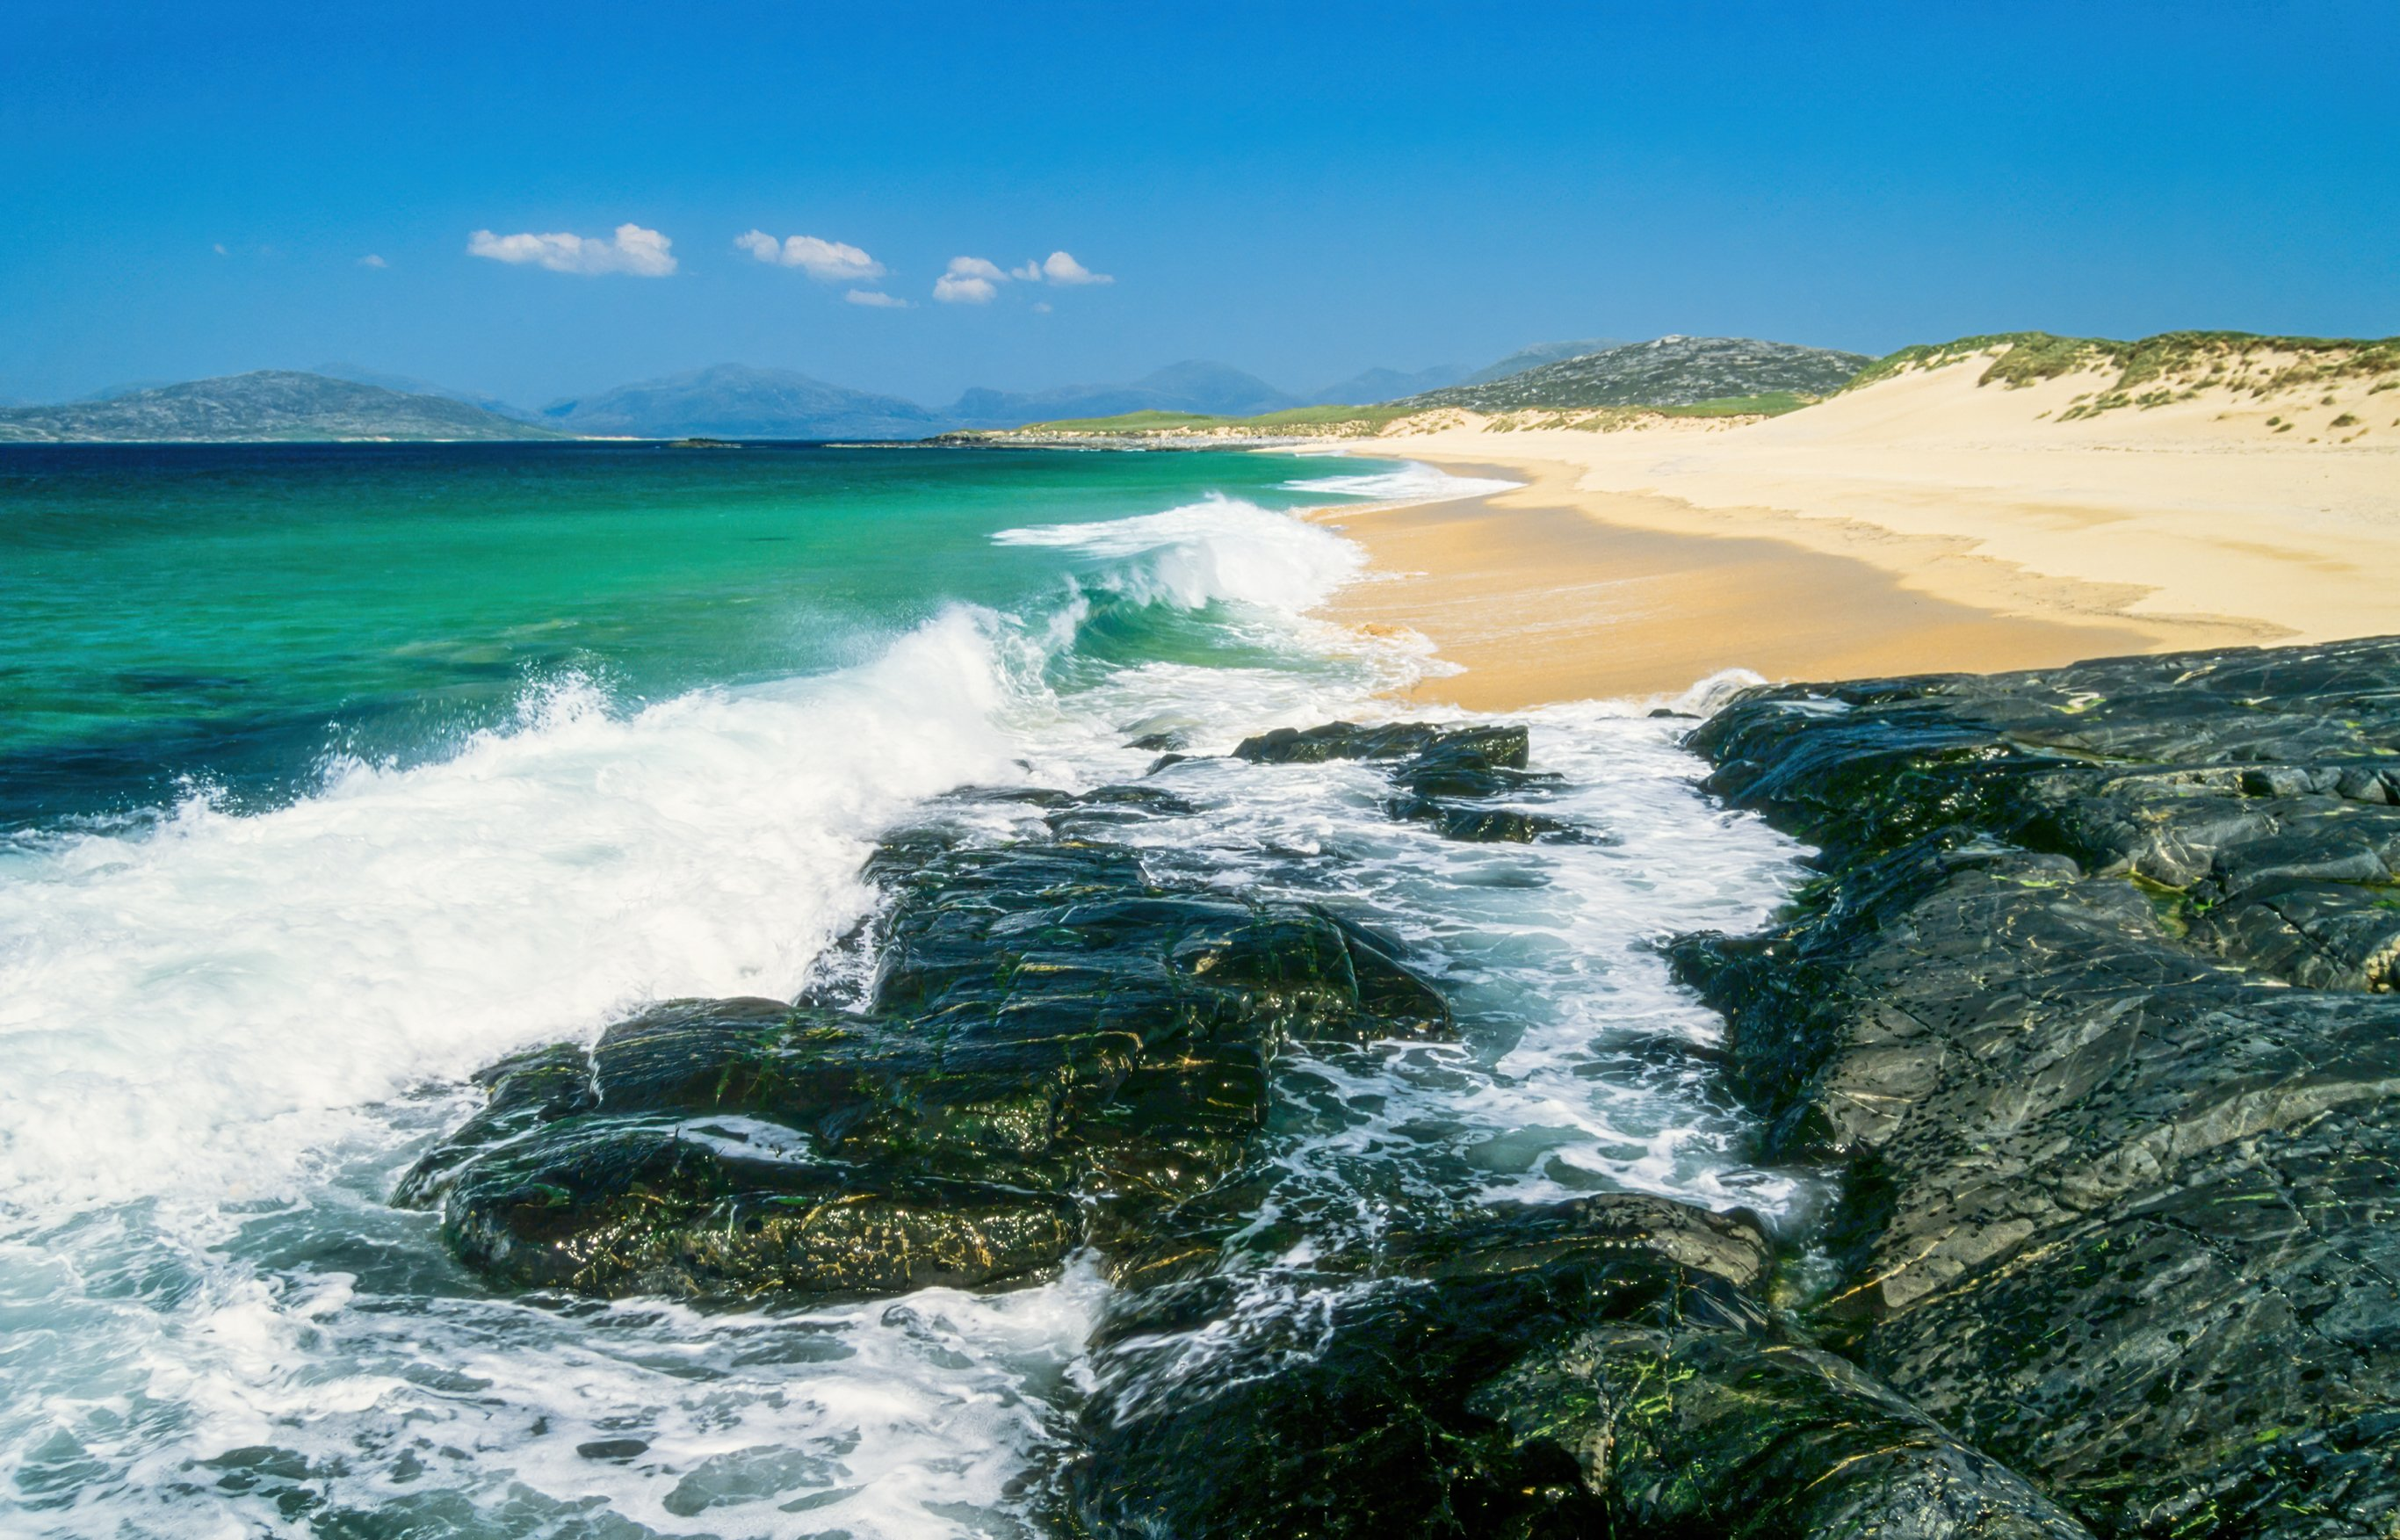 7-Day Outer Hebrides Tour - United Kingdom Itinerary